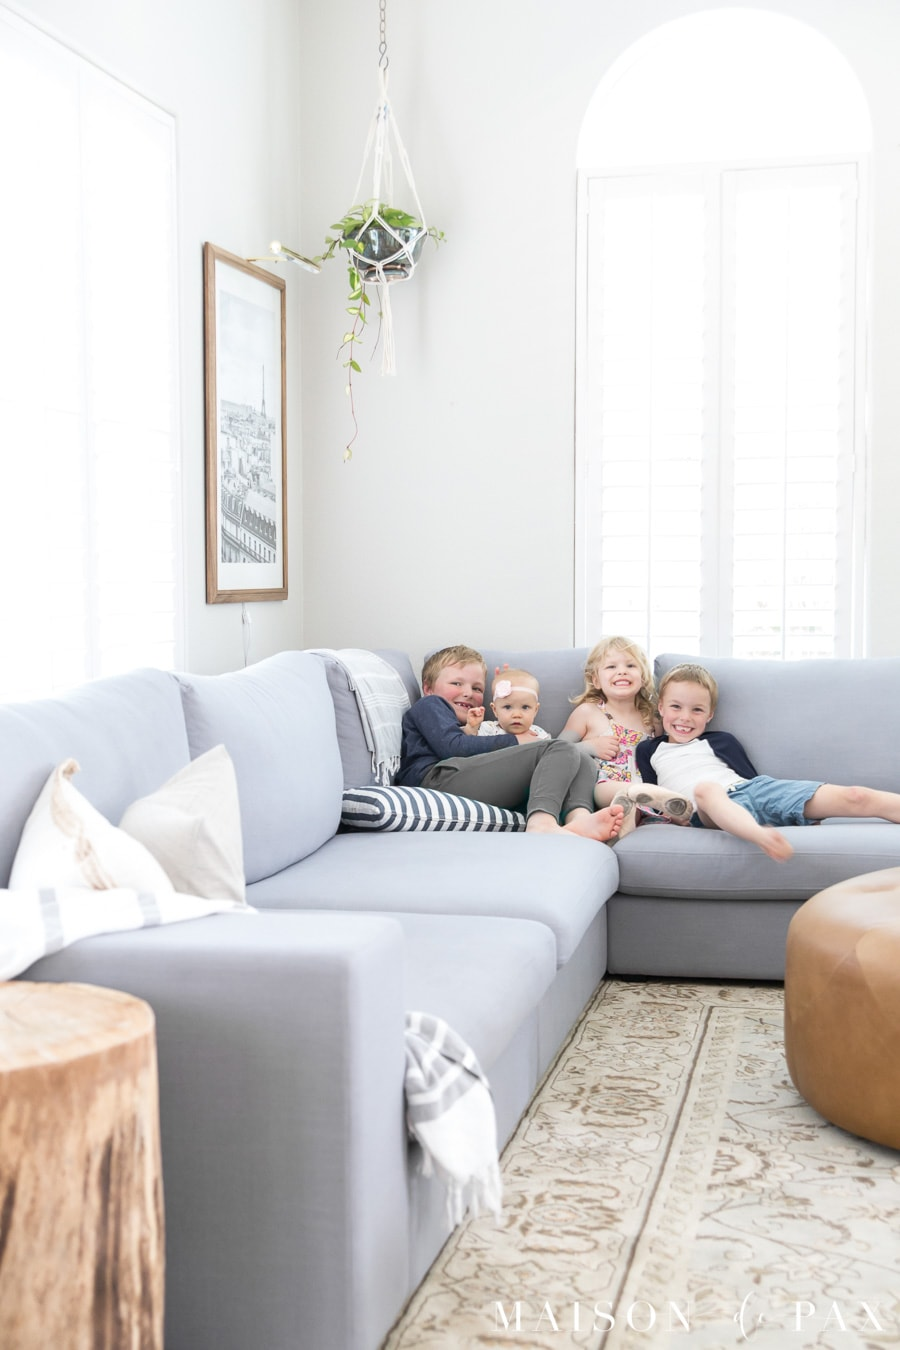 This huge gray sectional is perfect for a family room! Find out how to decorate a living room and create a light, bright feeling even with a large sectional. #livingroom #sectionalsofa #familyroom #familyroomdecor #livingroomdecor #decoratingsectionalsofa #modularsofa #lightgraysectional #graysectional #lightbrightdecor #decoratingwithkids #familyfriendlydecor